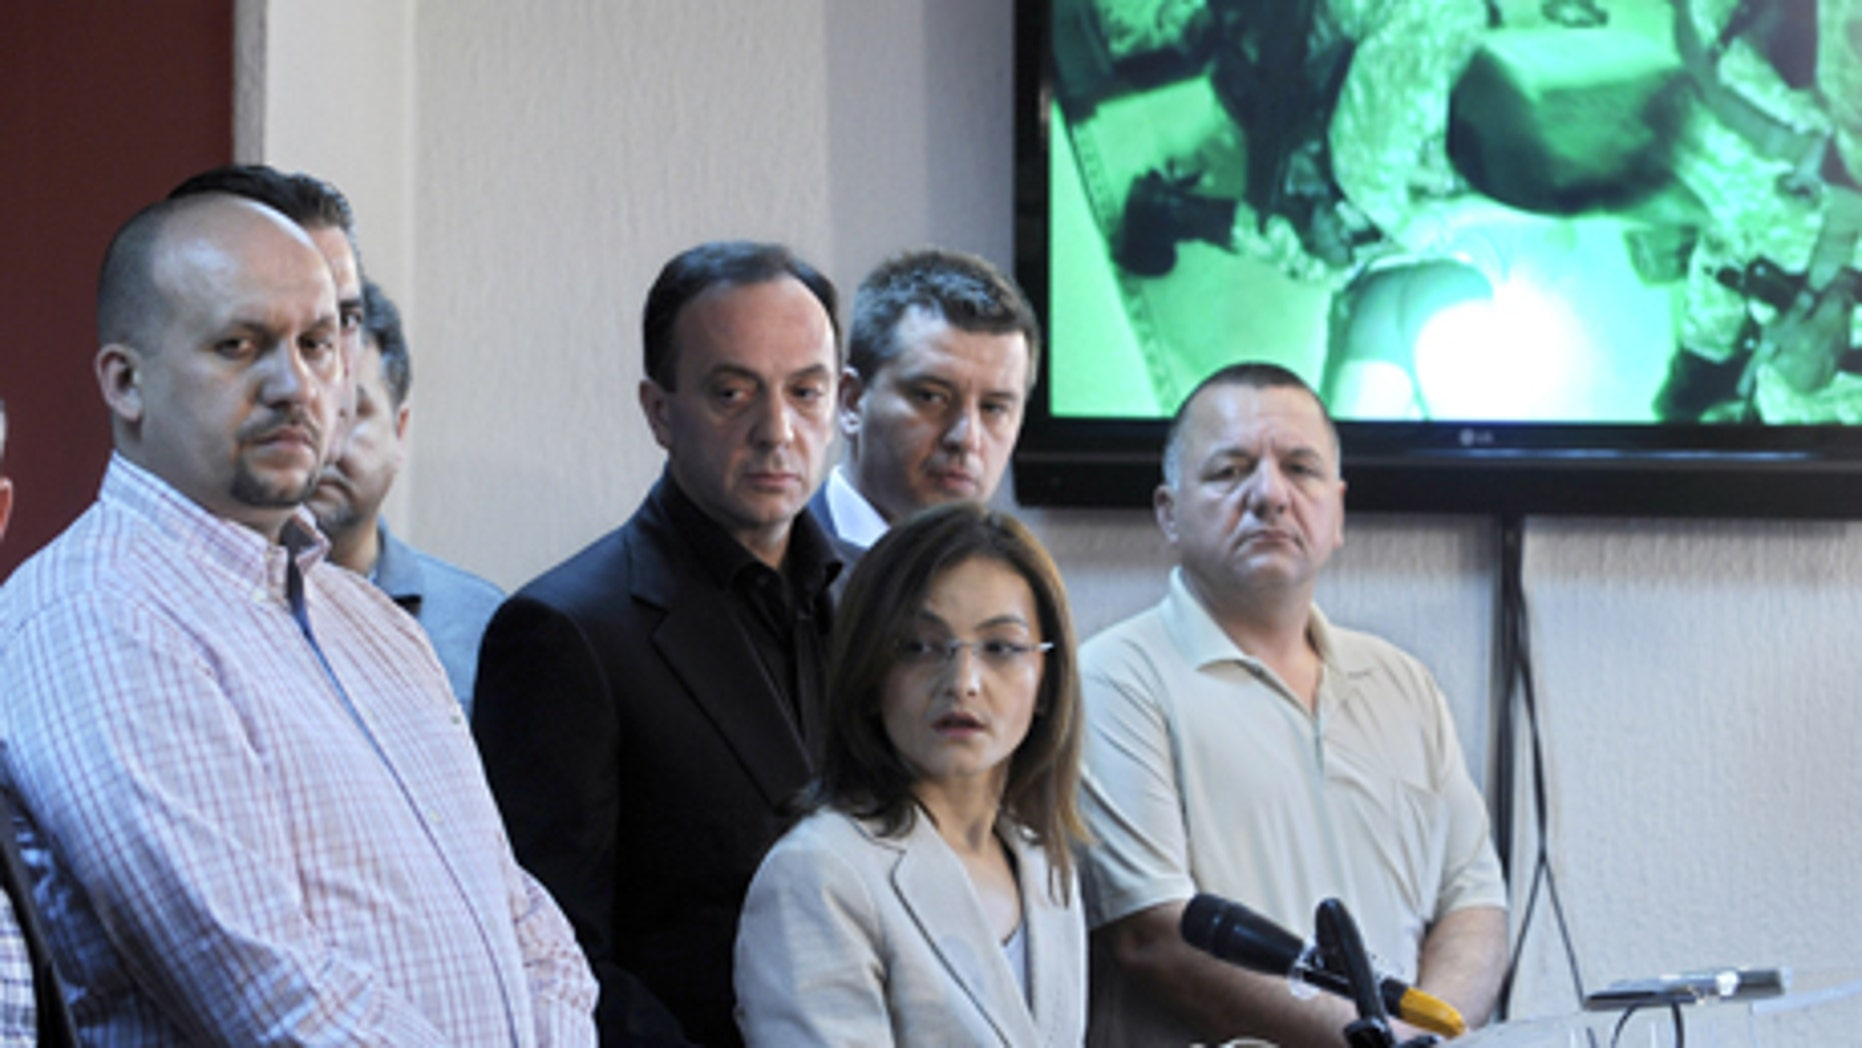 May 1, 2012: Macedonian Interior Minister Gordana Jankuloska, center front, talks to the media surrounded by her associates during a news conference in the capital Skopje. Macedonian authorities say they have arrested 20 people, all radical Islamists, in the murder of five Macedonian fishermen last month that fueled ethnic tensions in this tiny Balkan country. They have been charged with terrorism. (AP)